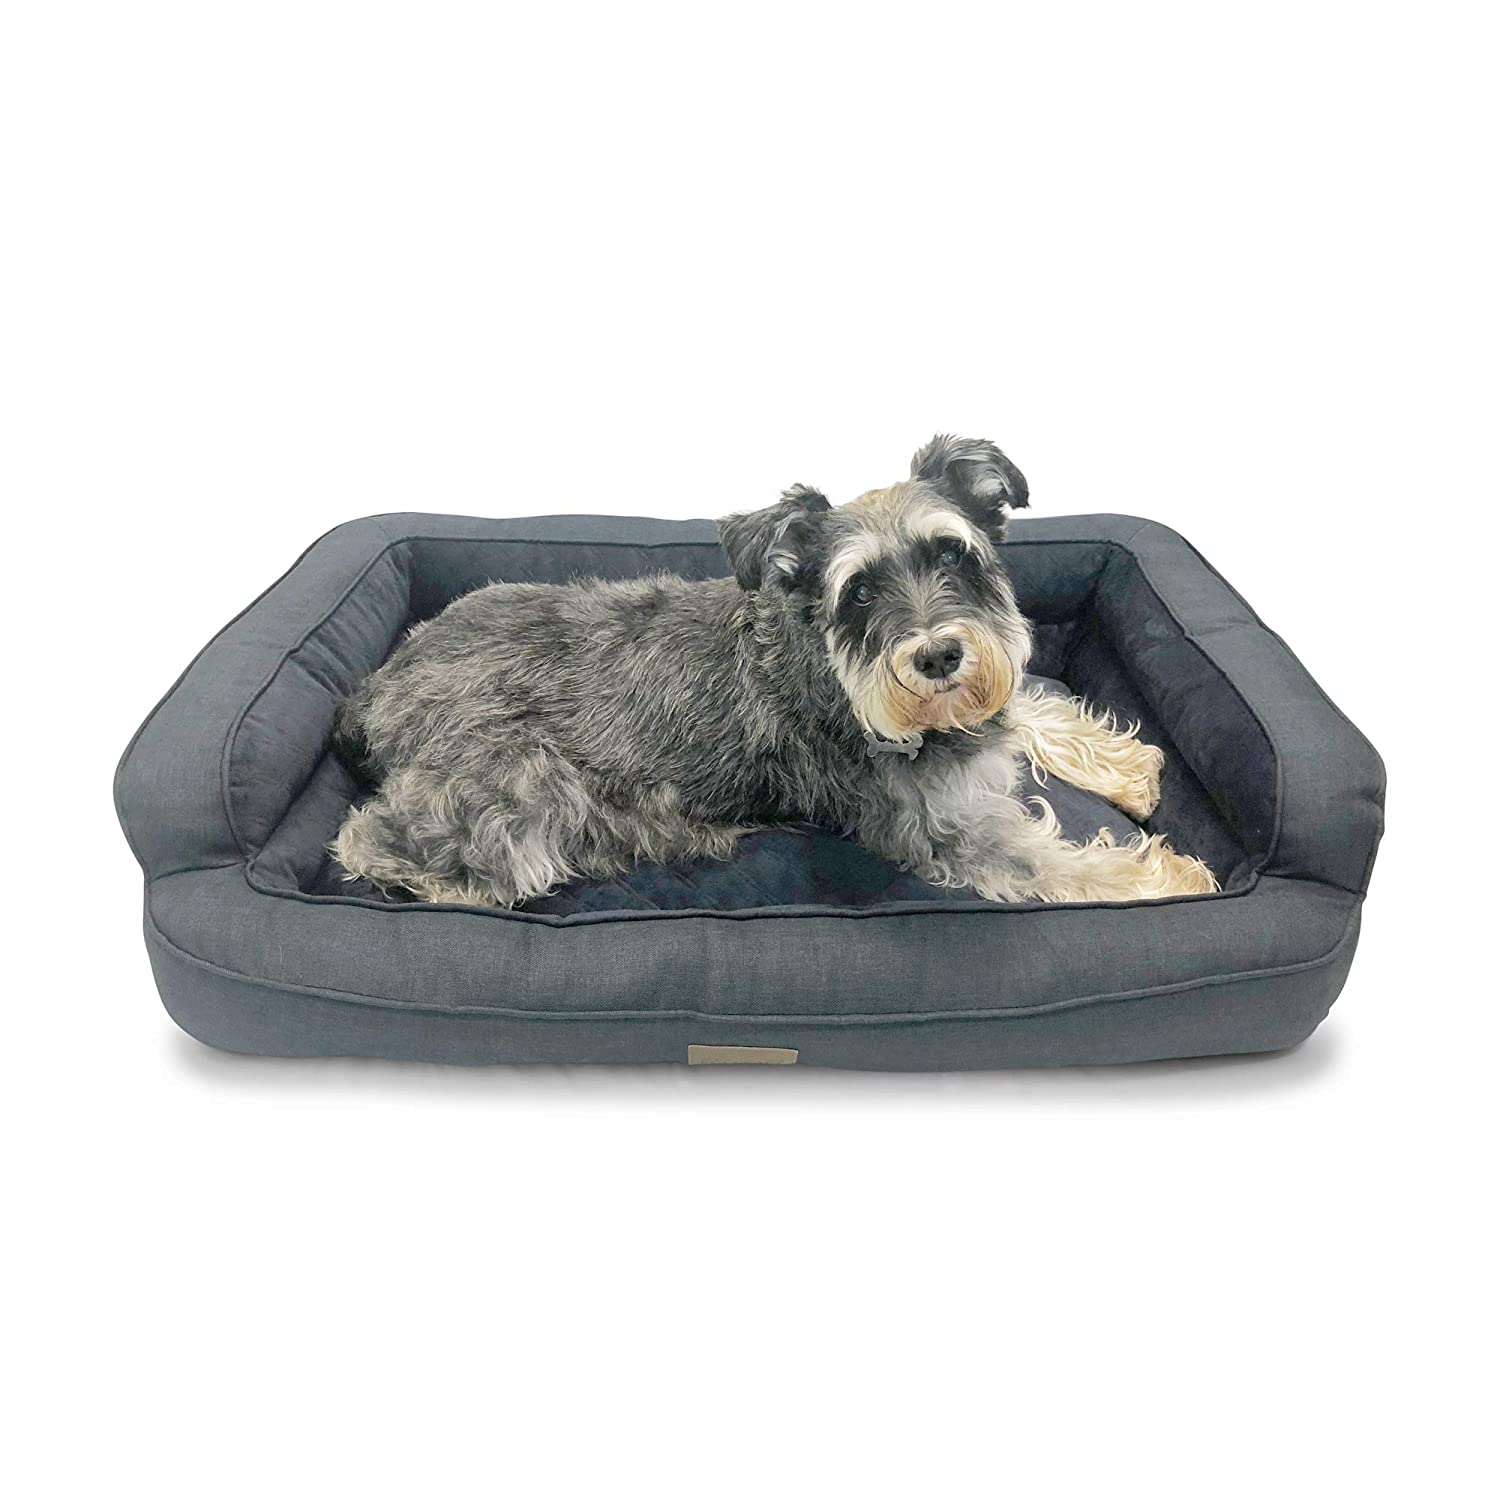 Pet Craft Supply Orthopedic Quilted Sofa-Style Couch Premium Chipped Memory Foam Pet Bed for Dogs Cats